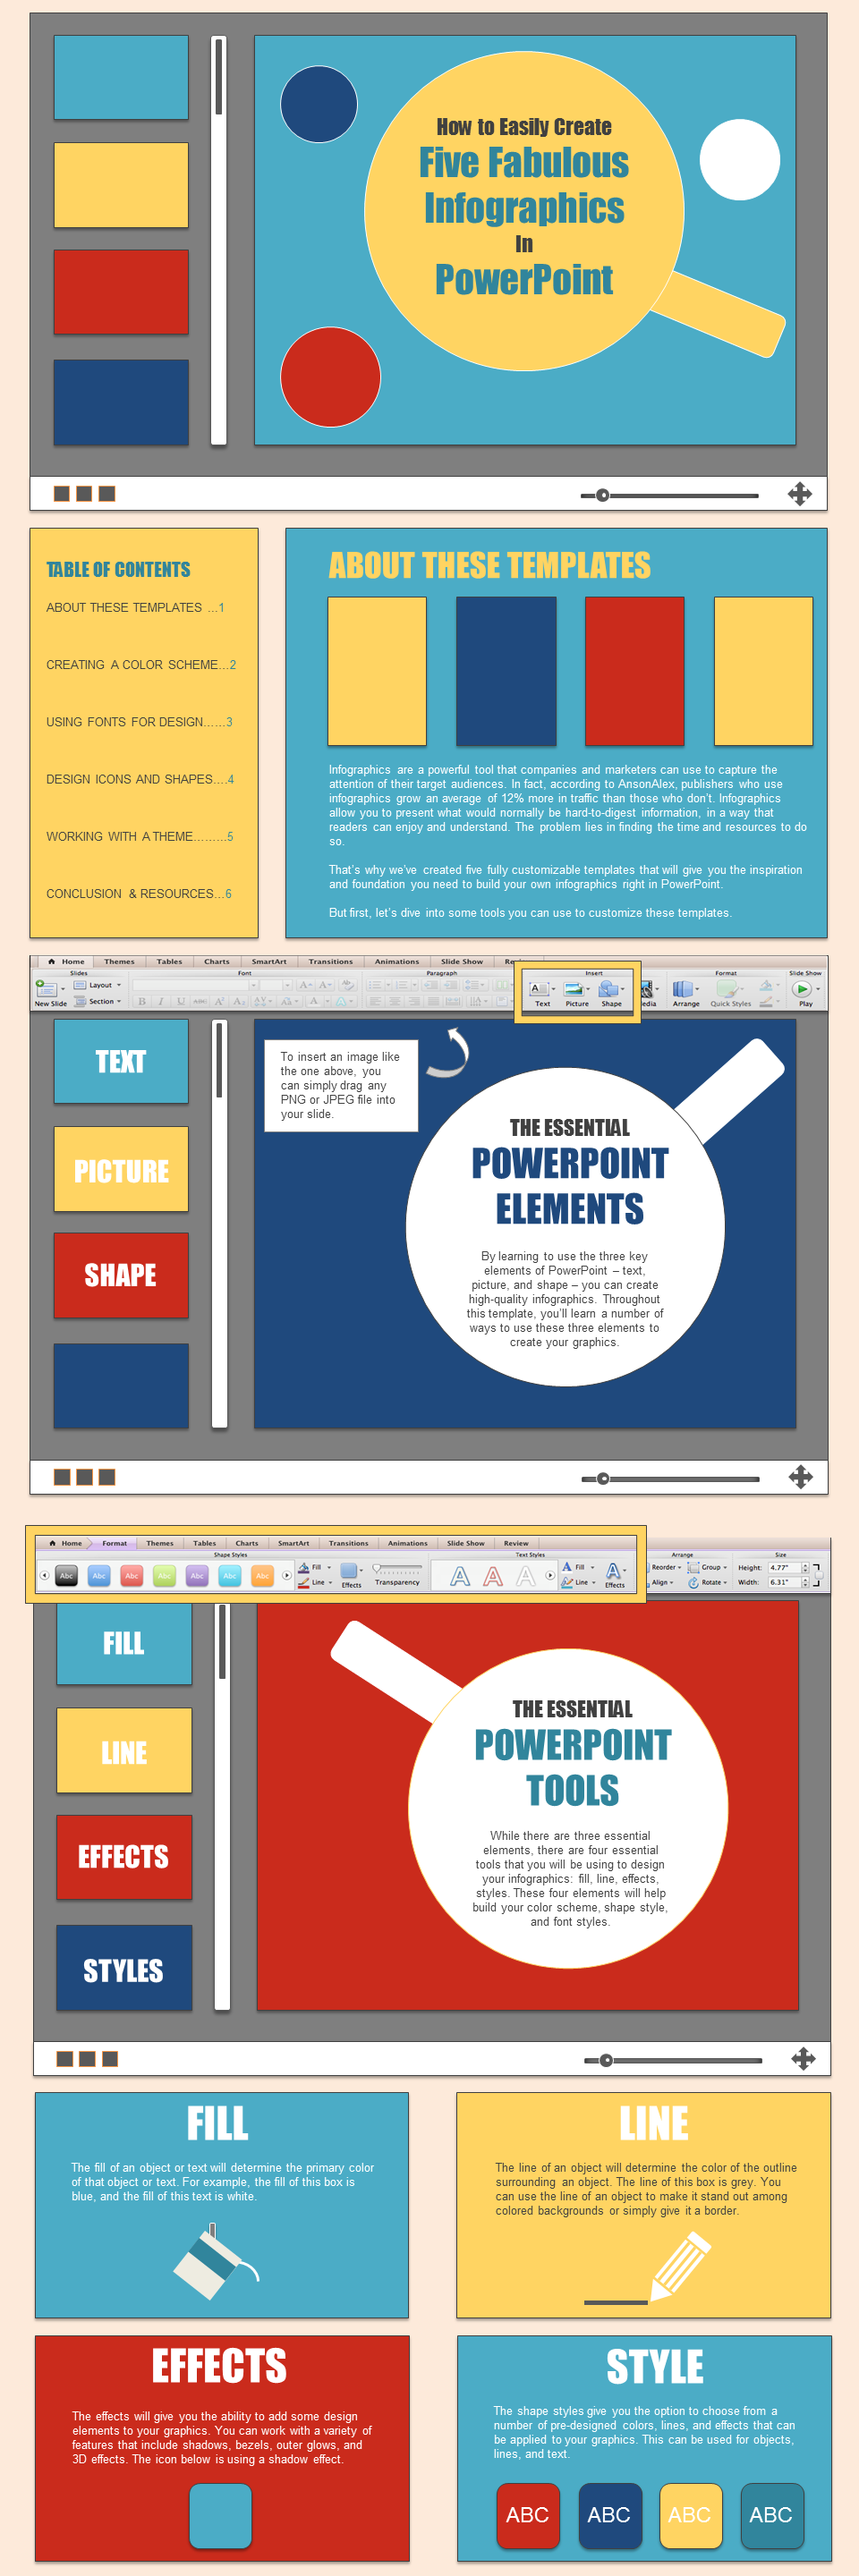 hubspot-powerpoint-infographic-about-creating-infographics